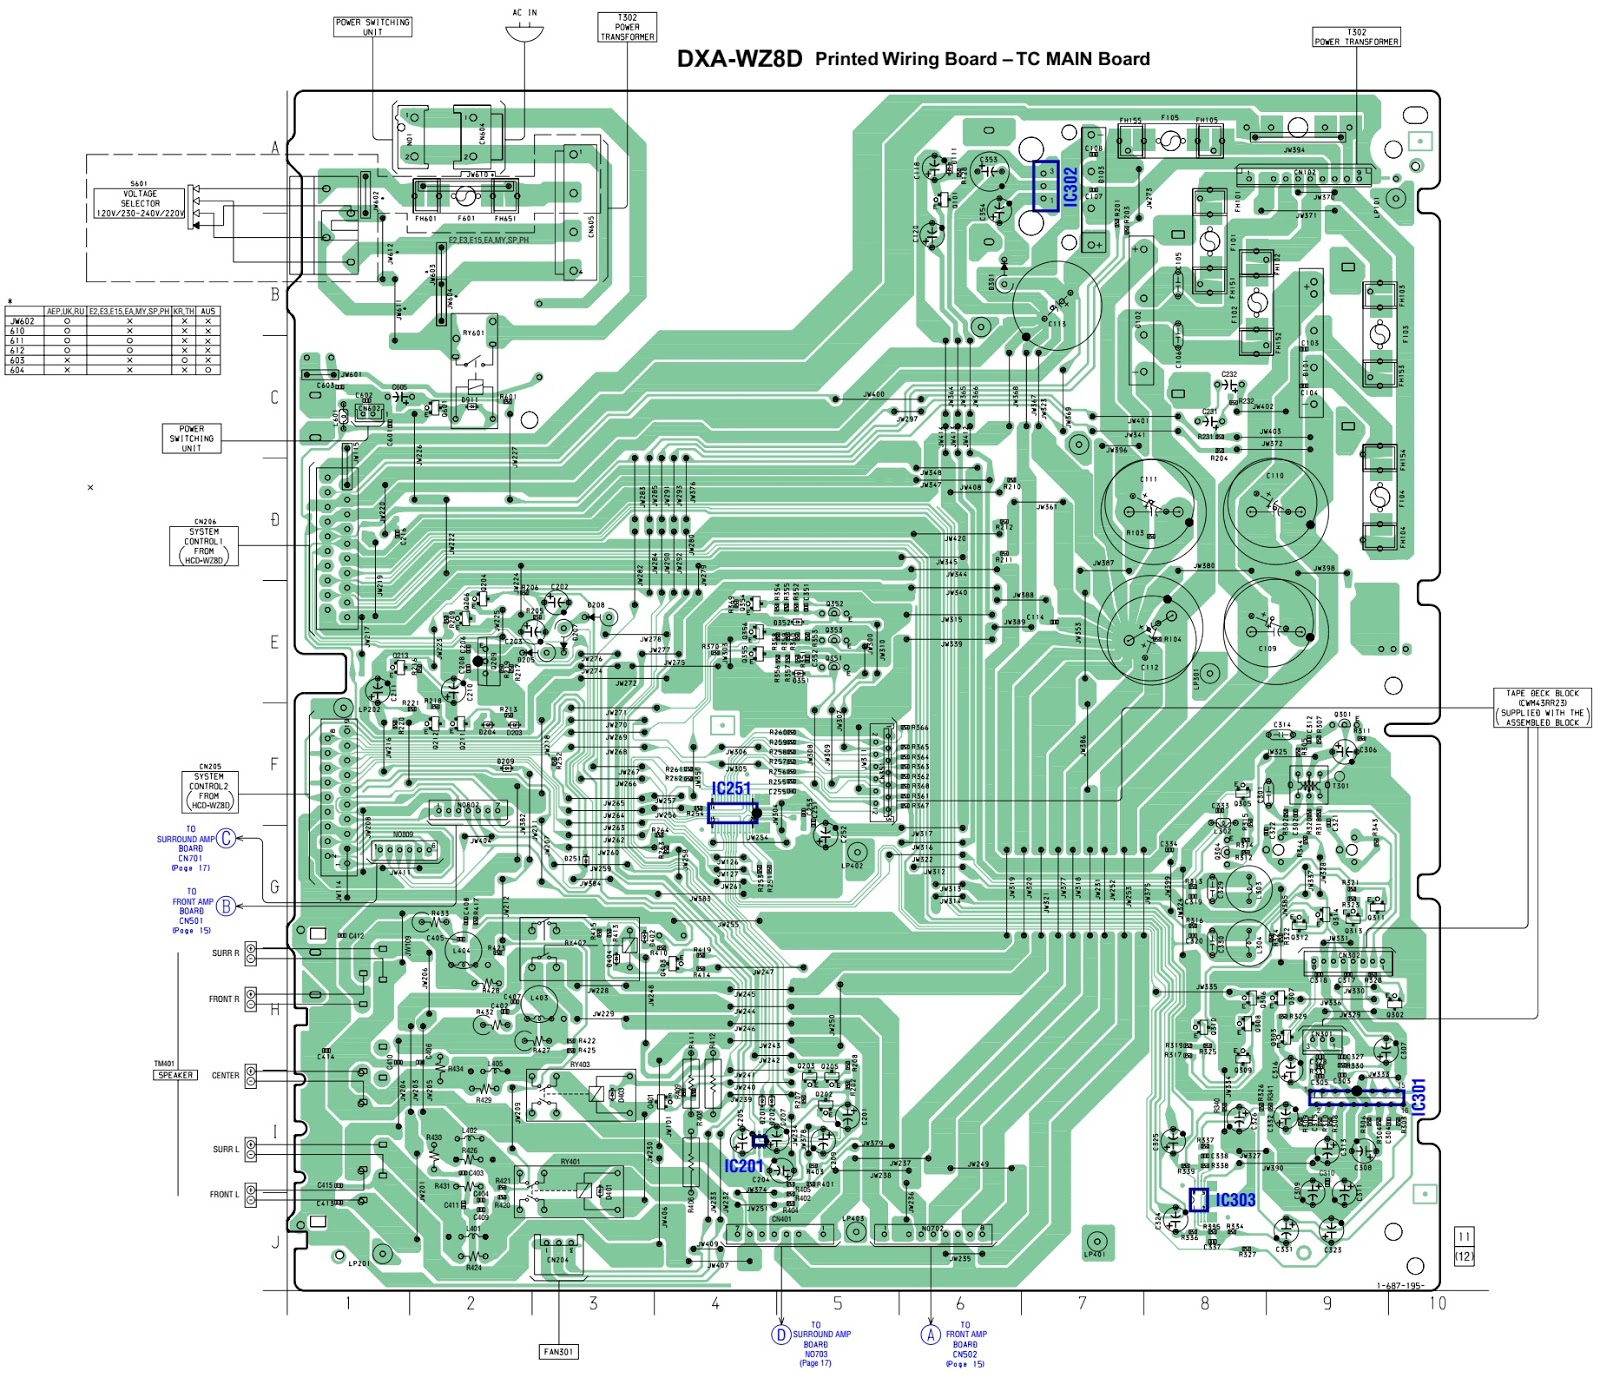 small resolution of sony dxa wz8d main board circuit diagram 1of 2